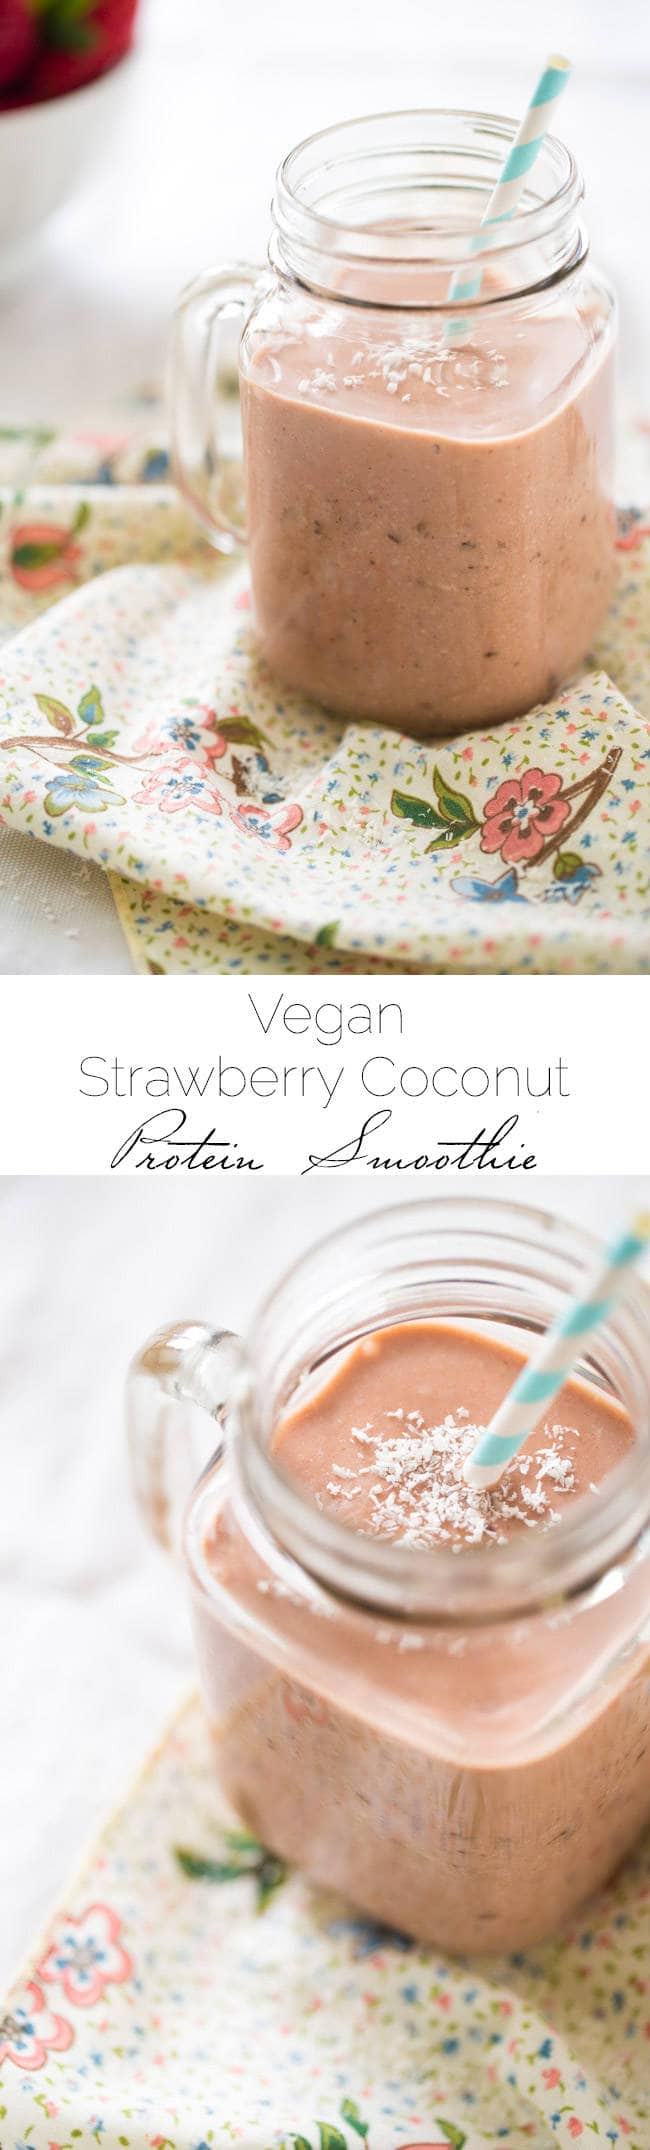 Vegan Strawberry Coconut Milk Smoothie - Made in 5 mins, only 5 ingredients and SO healthy and protein packed! | Foodfaithfitness.com | @FoodFaithFit